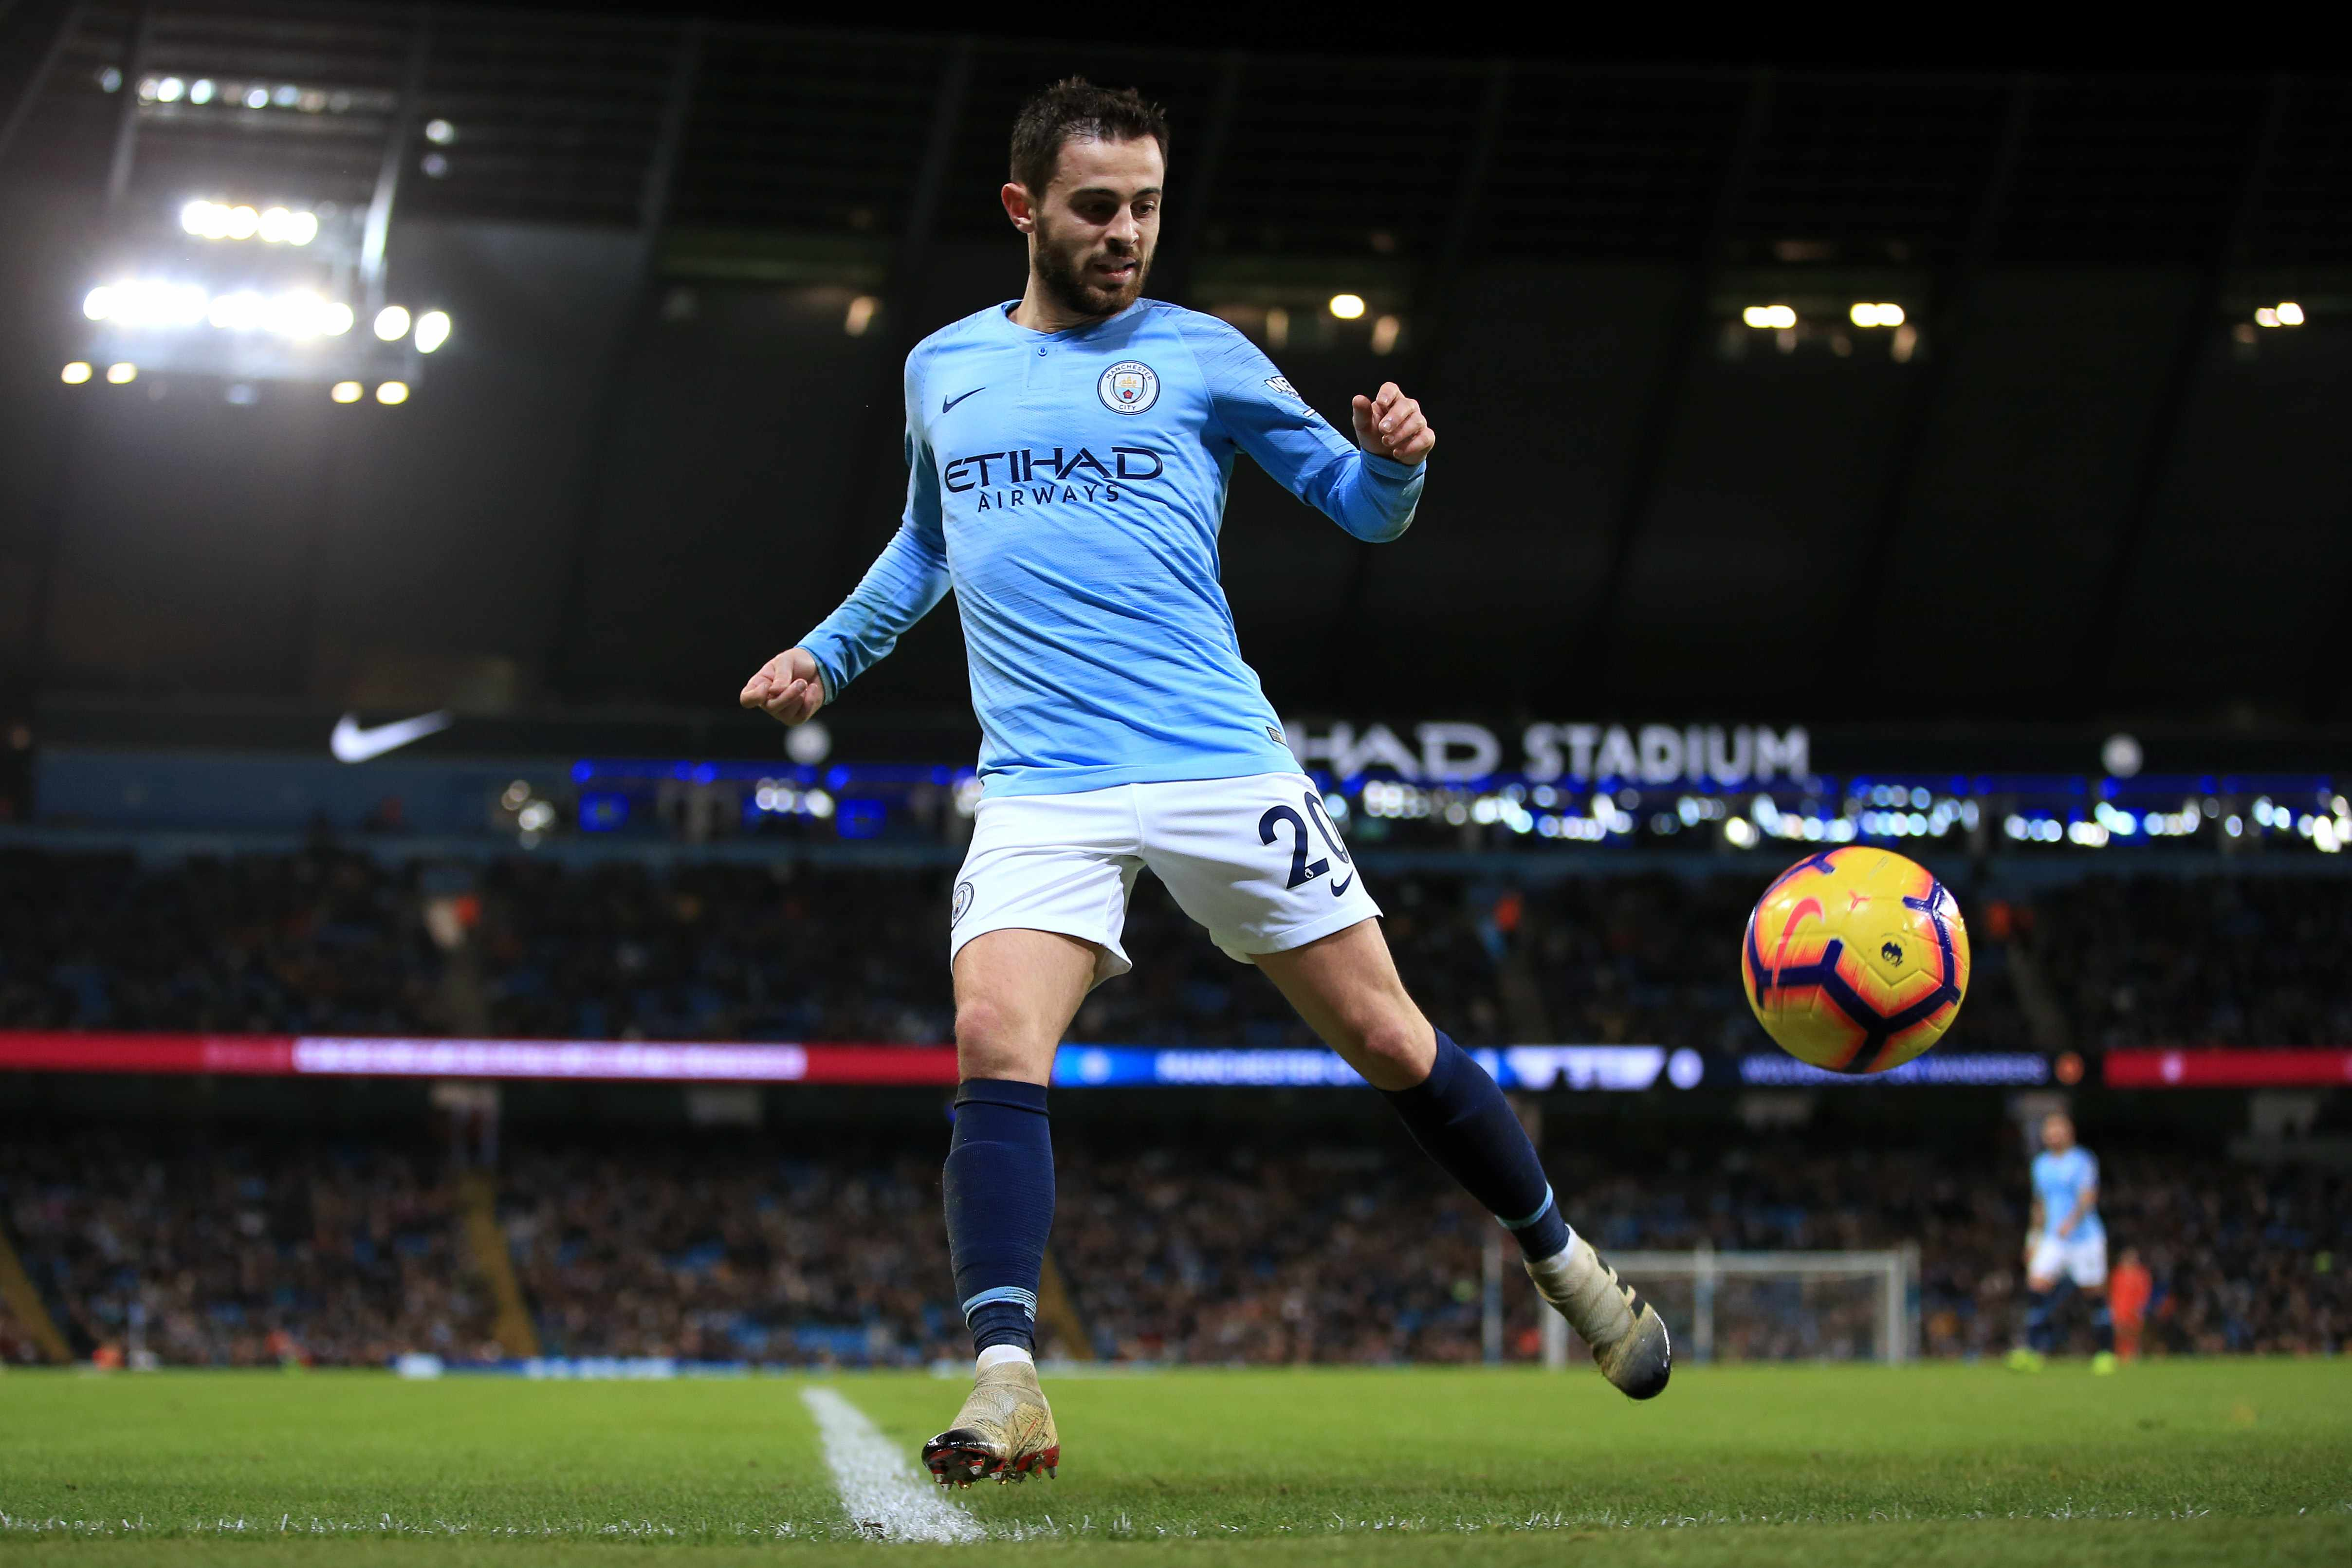 MANCHESTER, ENGLAND - JANUARY 14: Bernardo Silva of Man City in action during the Premier League match between Manchester City and Wolverhampton Wanderers at the Etihad Stadium on January 14, 2019 in Manchester, United Kingdom. (Photo by Simon Stacpoole/Offside/Getty Images)